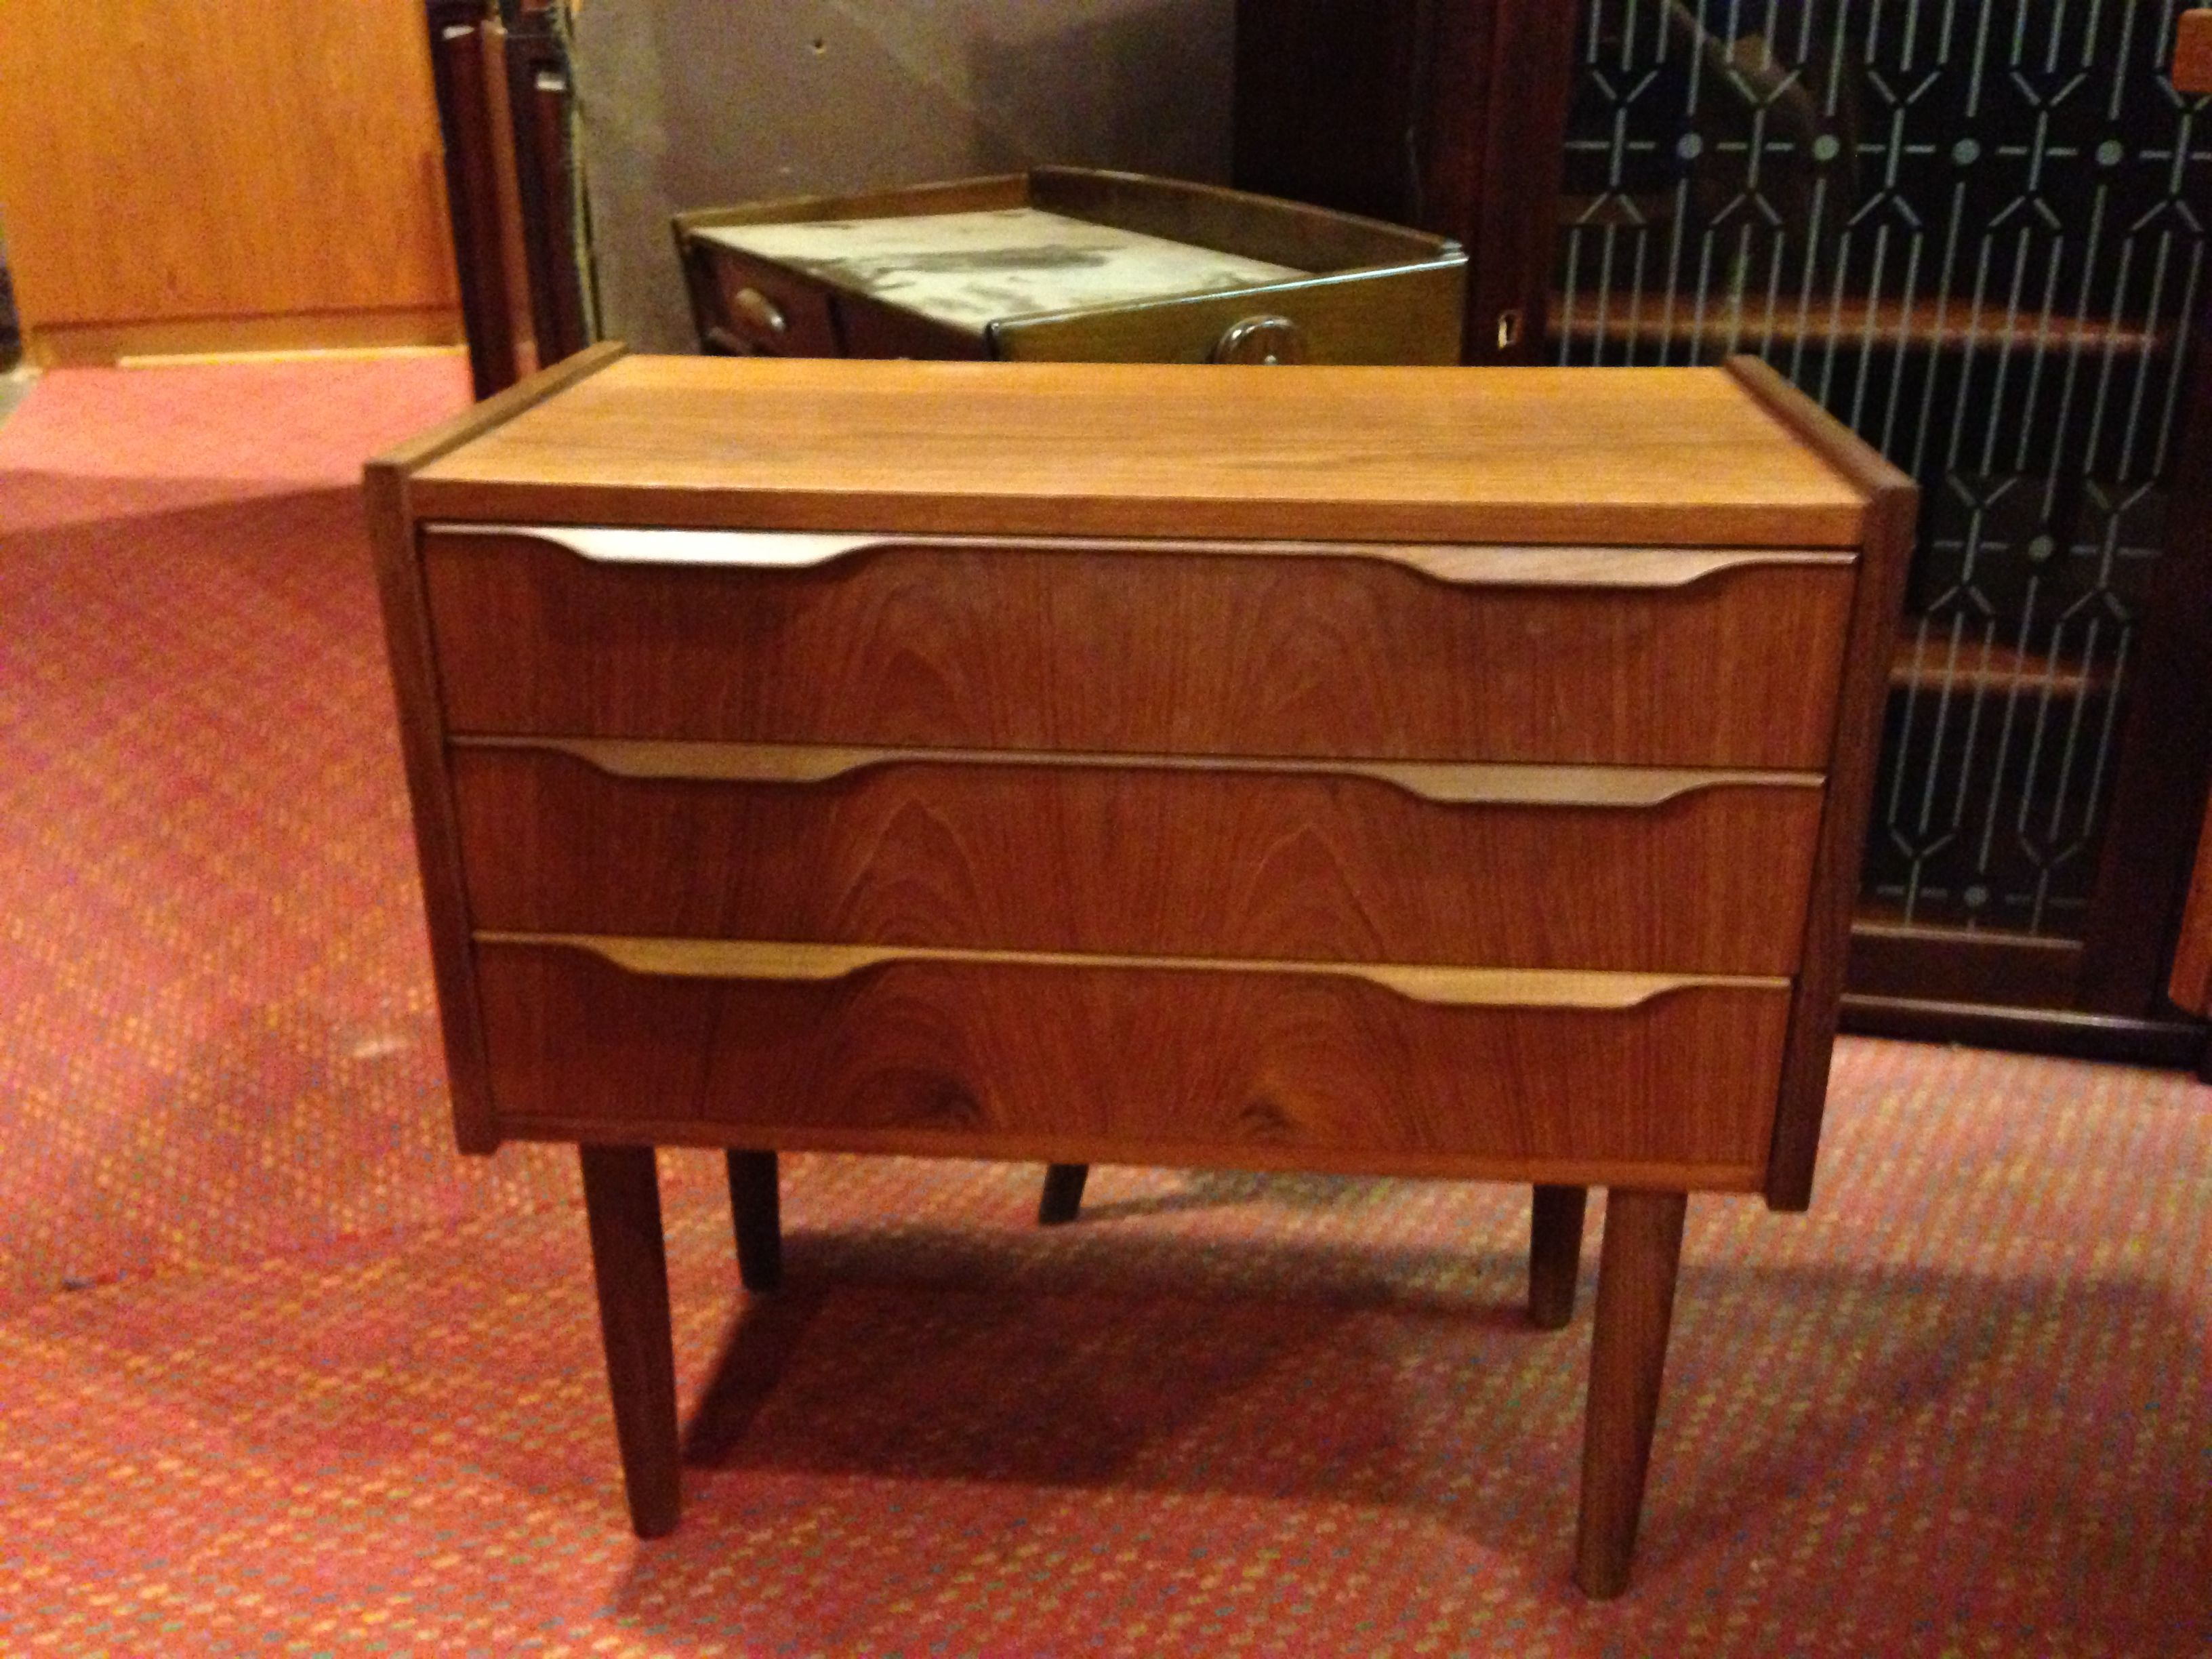 Mini chest of drawers. Living Room side table 23.75w x 12d ...